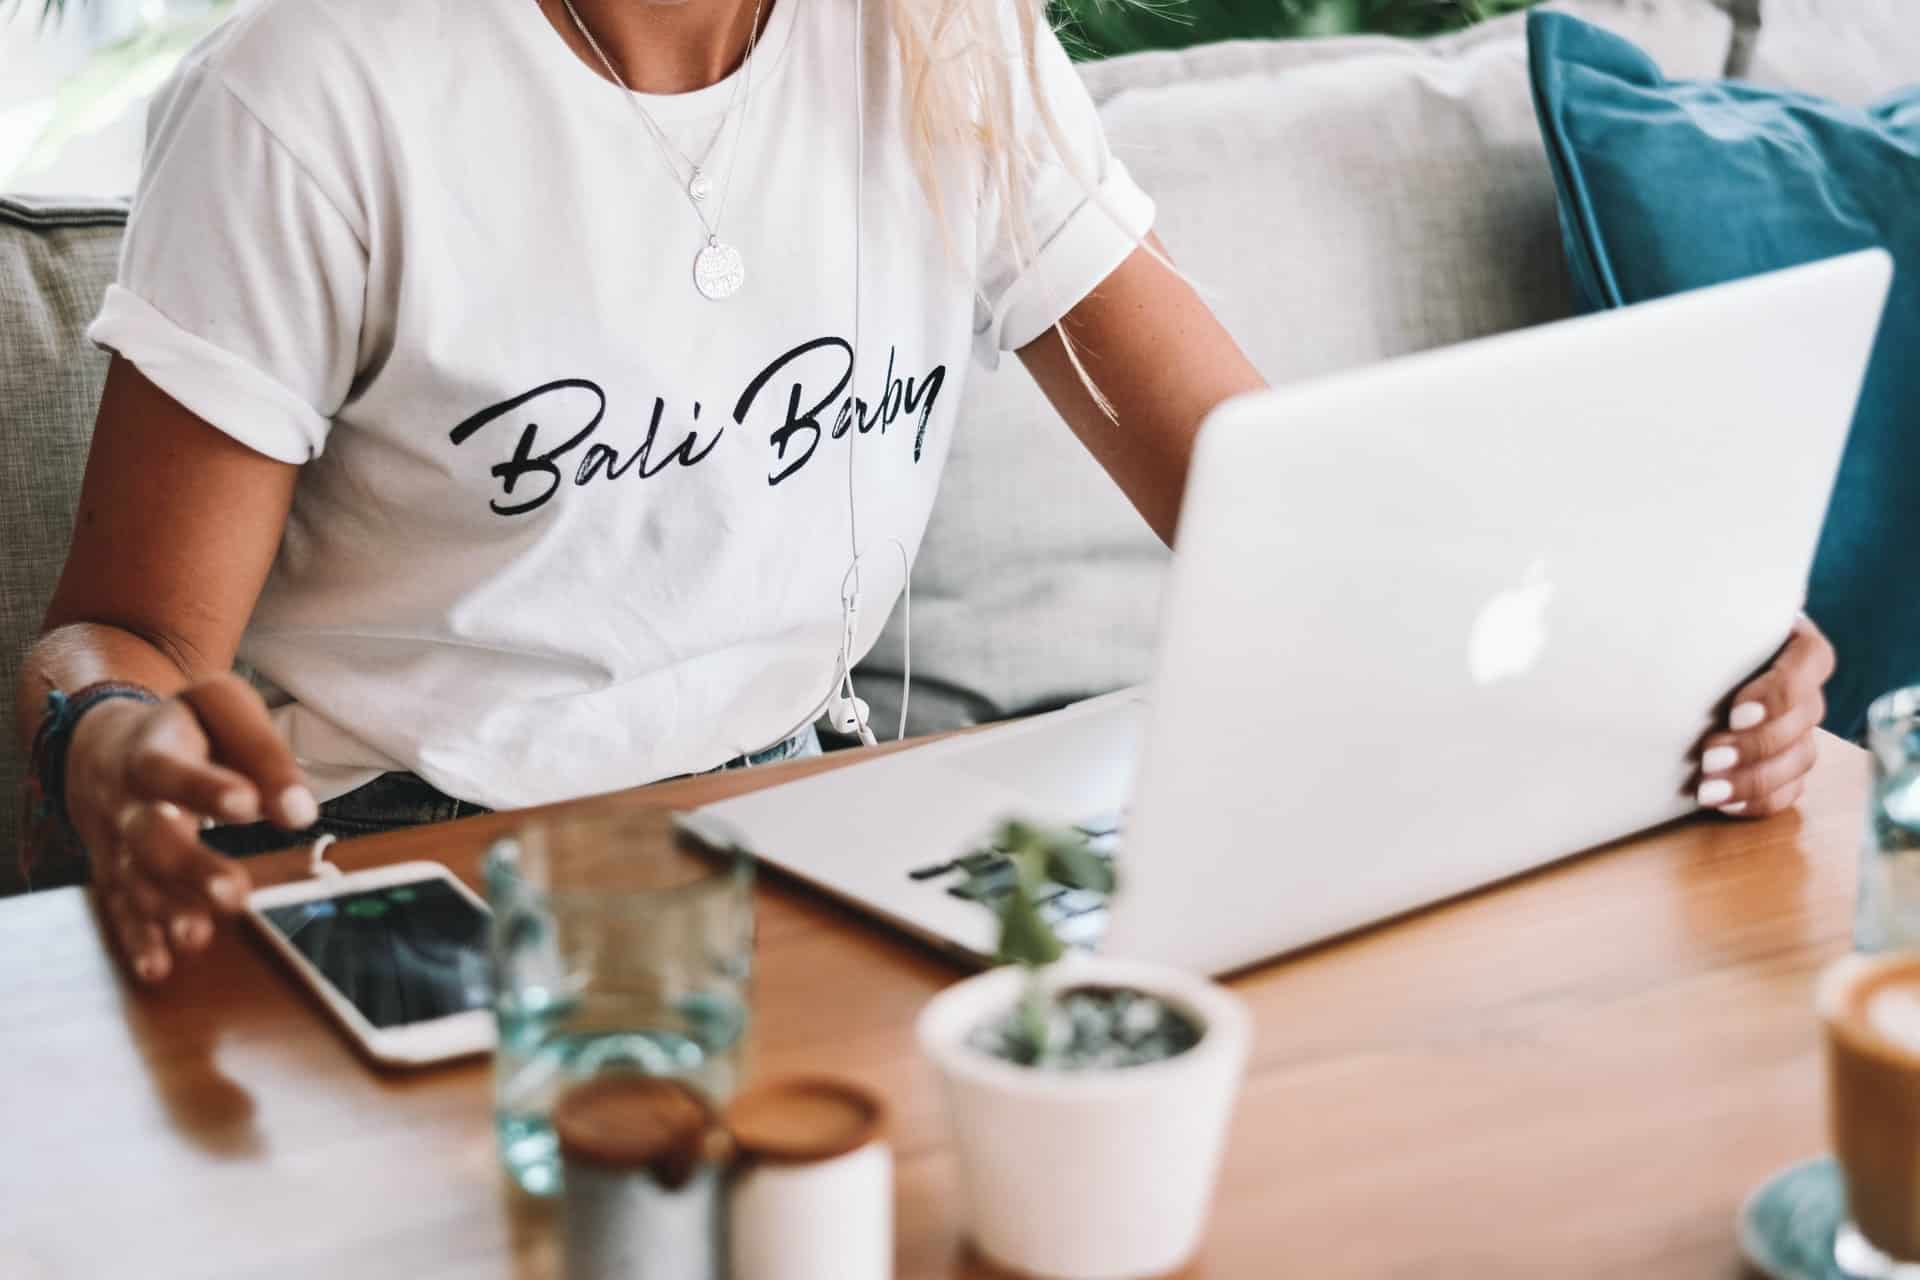 Woman in White shirt Text Bali Baby sitting at desk